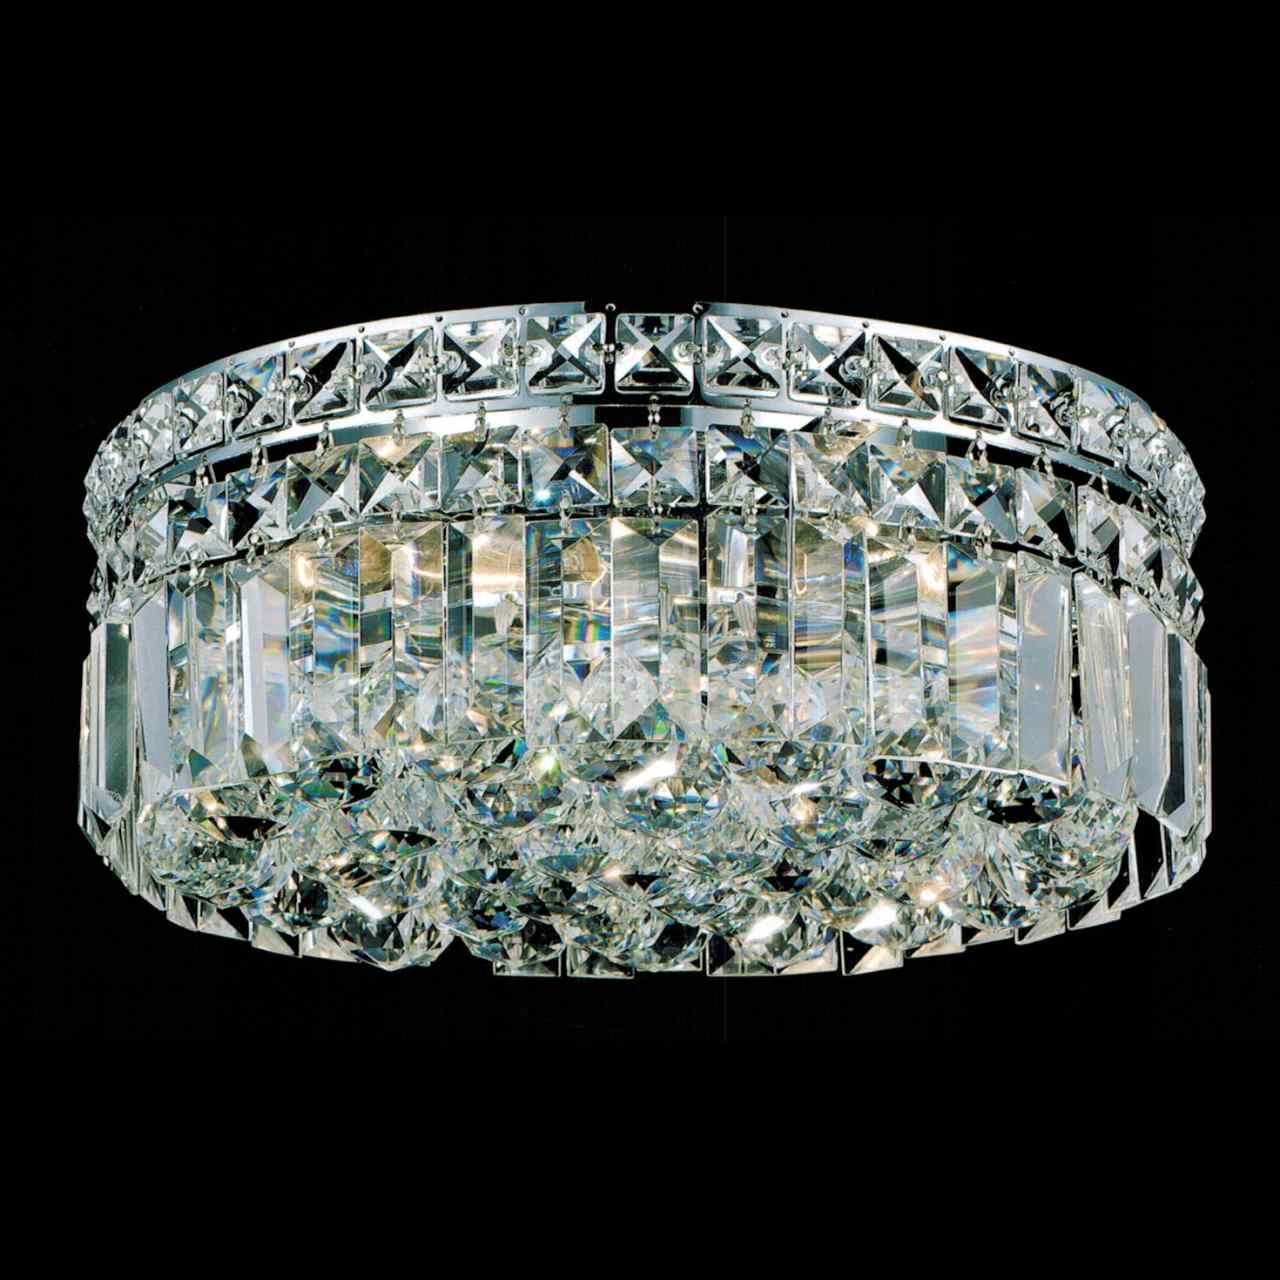 Brizzo Lighting Stores 12 Bossolo Transitional Crystal Round Regarding Flush Chandelier (Image 2 of 15)